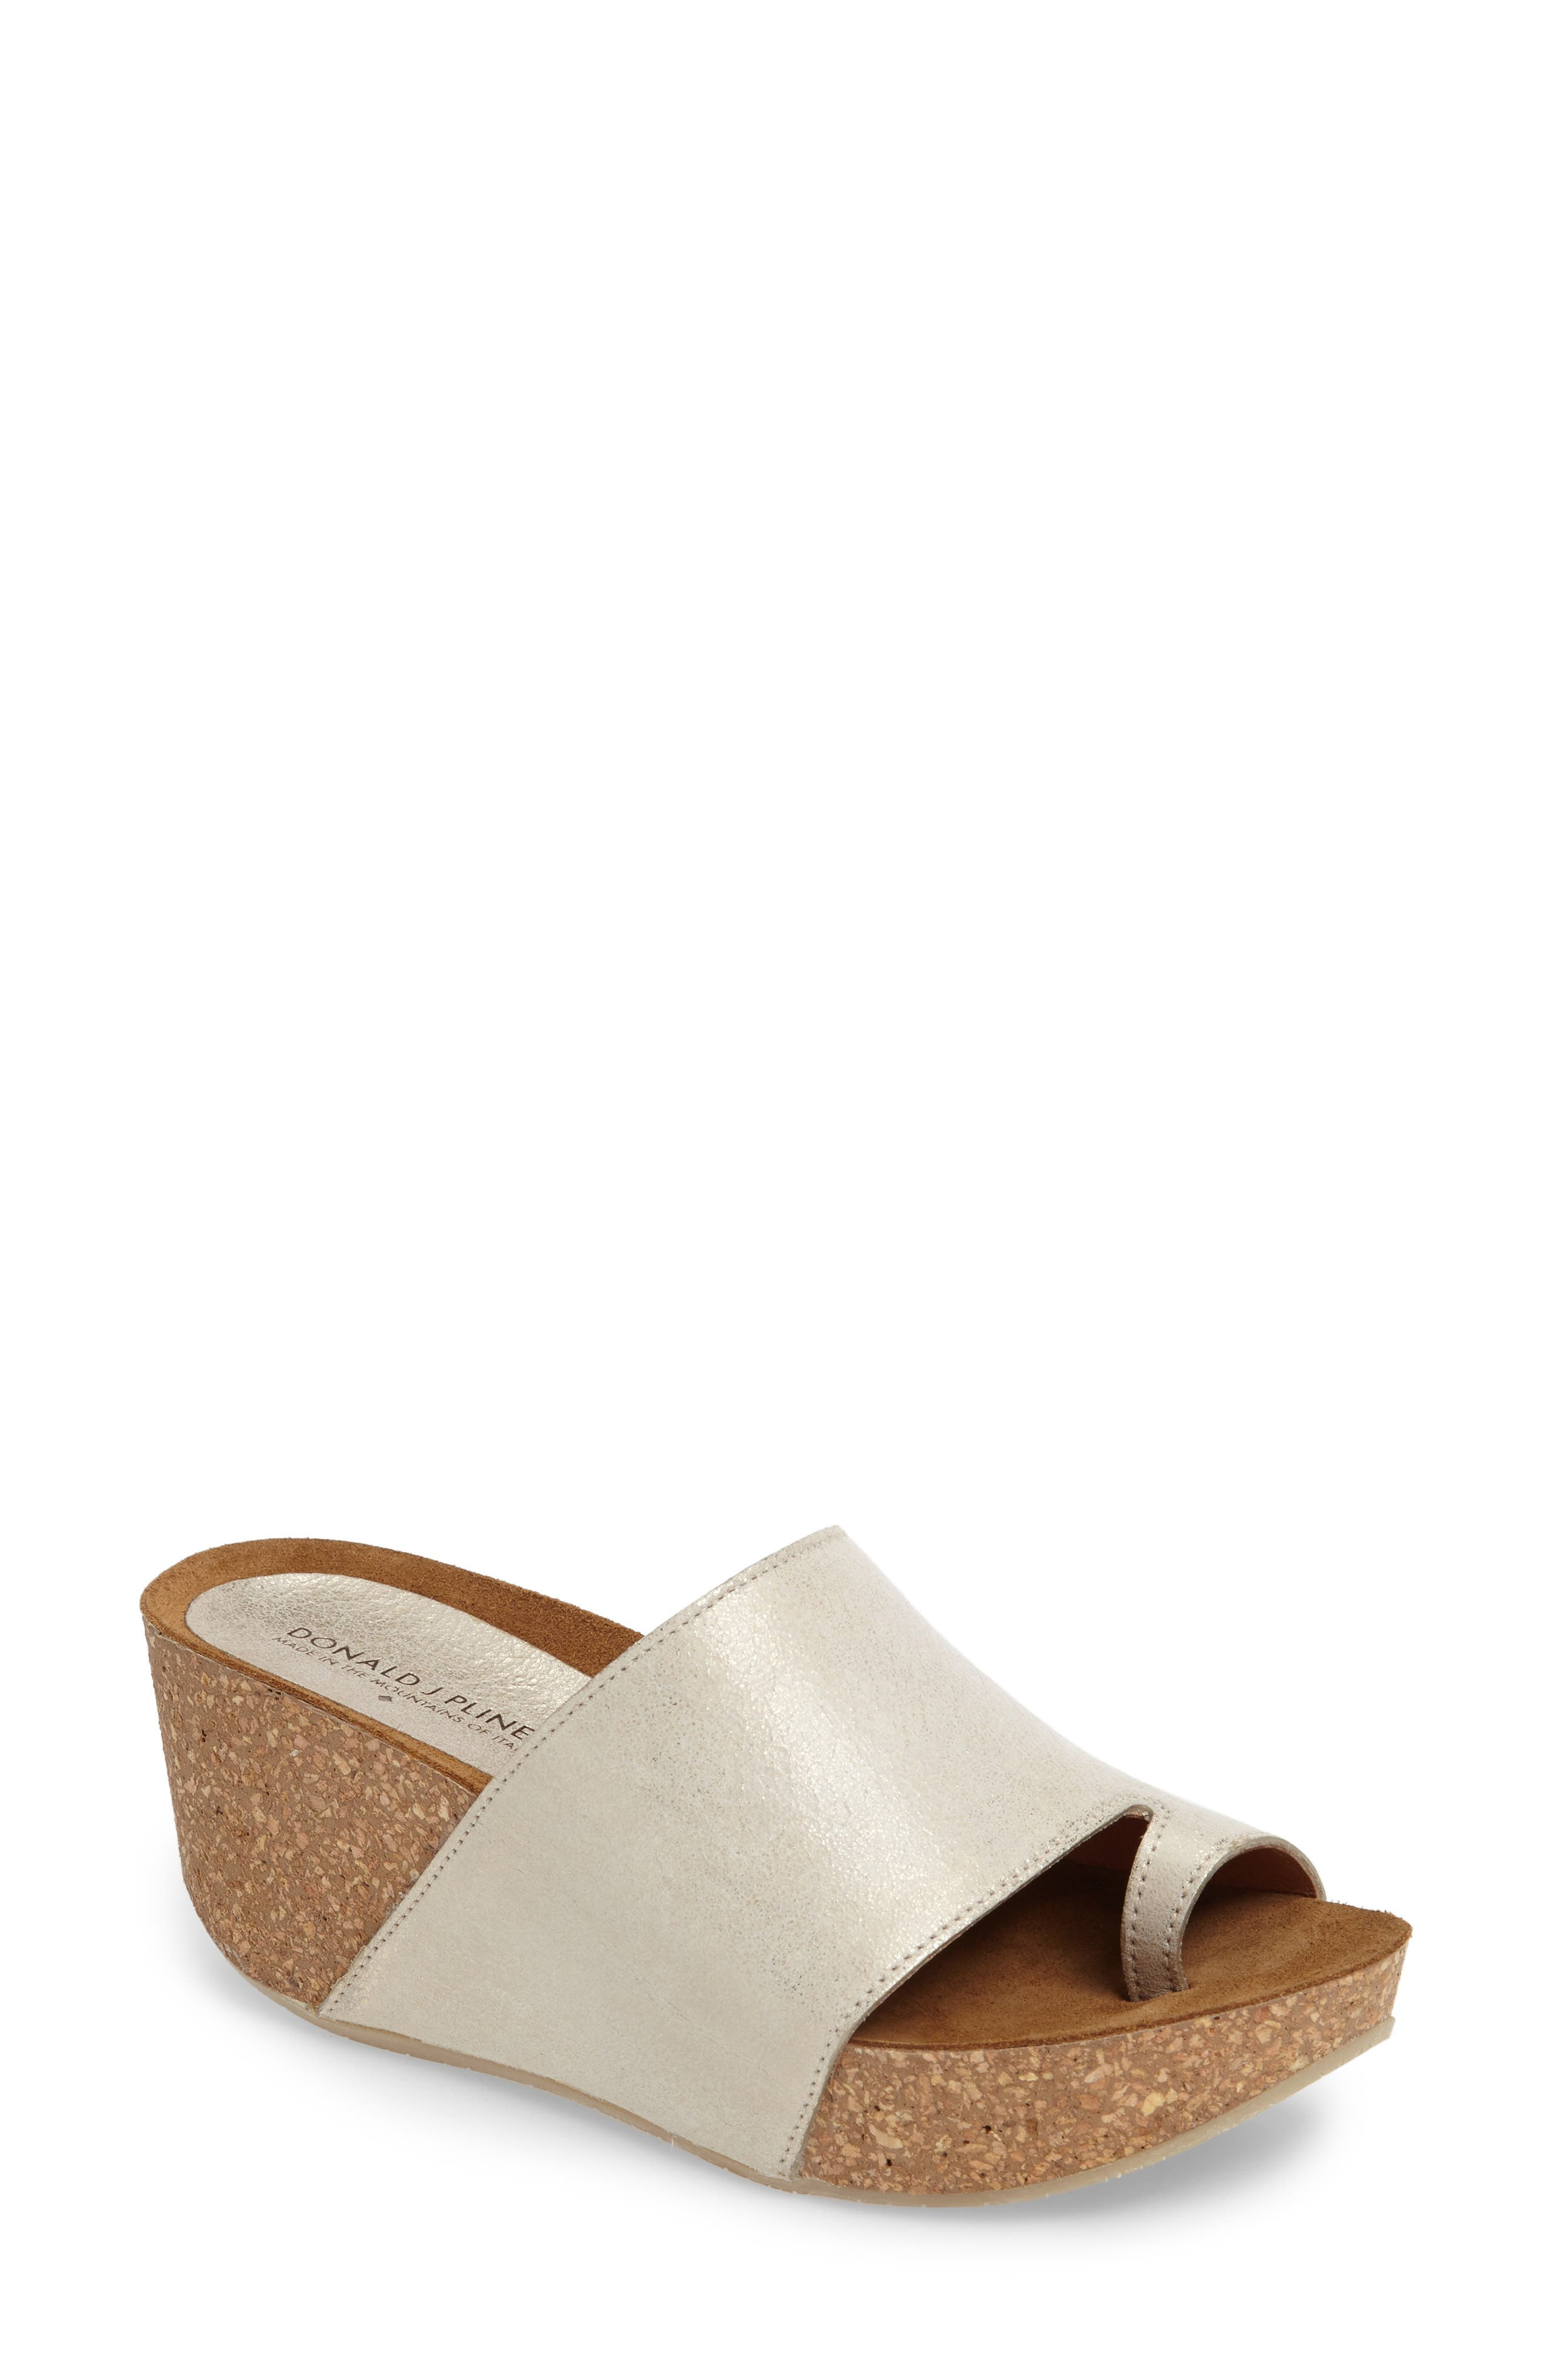 Donald J Pliner Ginie Platform Wedge Sandal,                             Main thumbnail 8, color,